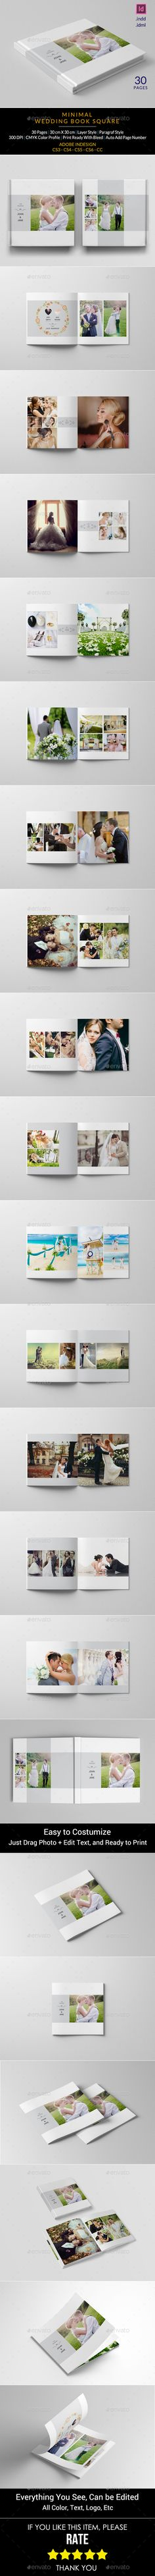 Minimalist Square Wedding Album - Photo Albums Print Templates I download click here http://graphicriver.net/item/minimalist-square-wedding-album/14778565?ref=imanvector